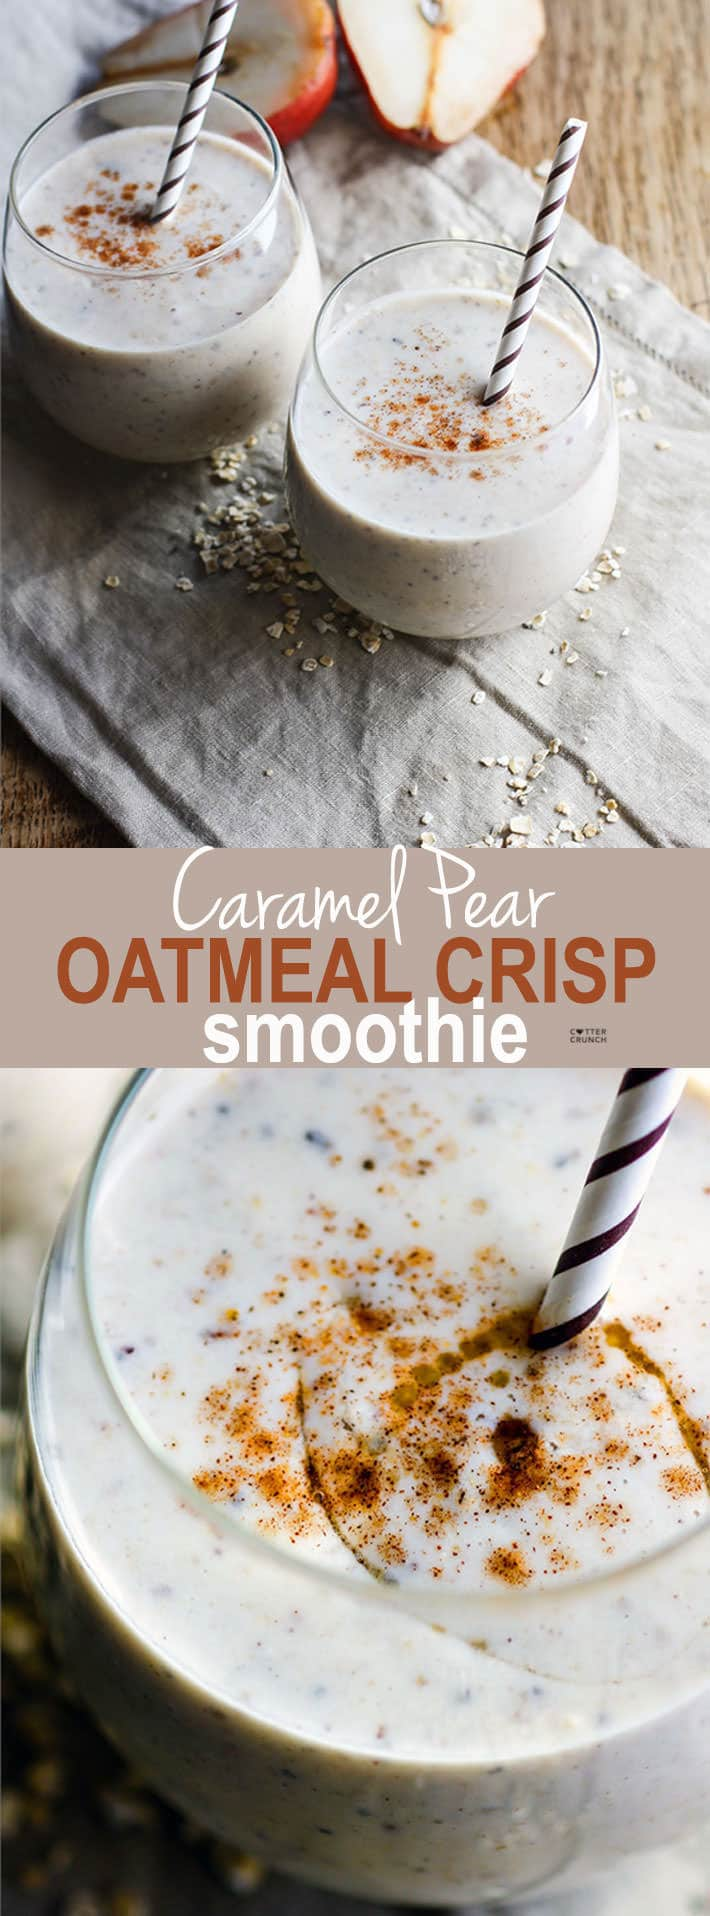 Gluten Free Caramel Pear Oatmeal Crisp Smoothie! A healthy dessert style smoothie you can enjoy for breakfast, post workout, snacking, or for late night munching! Super creamy, delicious, and FALL inspired! @cottercrunch